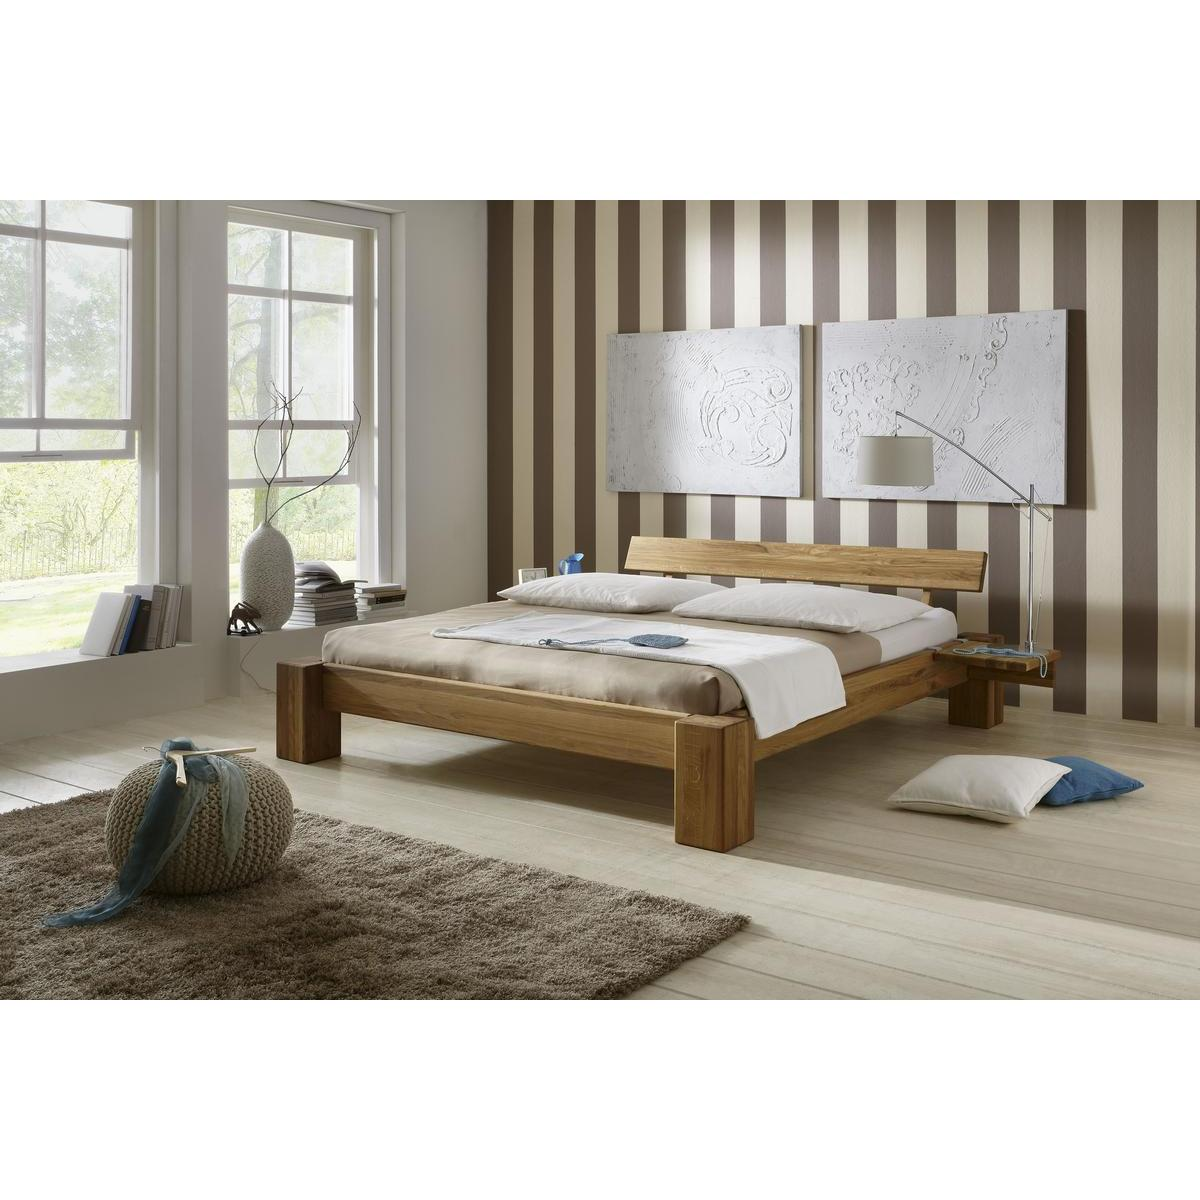 einzelbett 100x200 hasena soft line bett noble kopfteil elipsa fe mico alu x loading zoom with. Black Bedroom Furniture Sets. Home Design Ideas